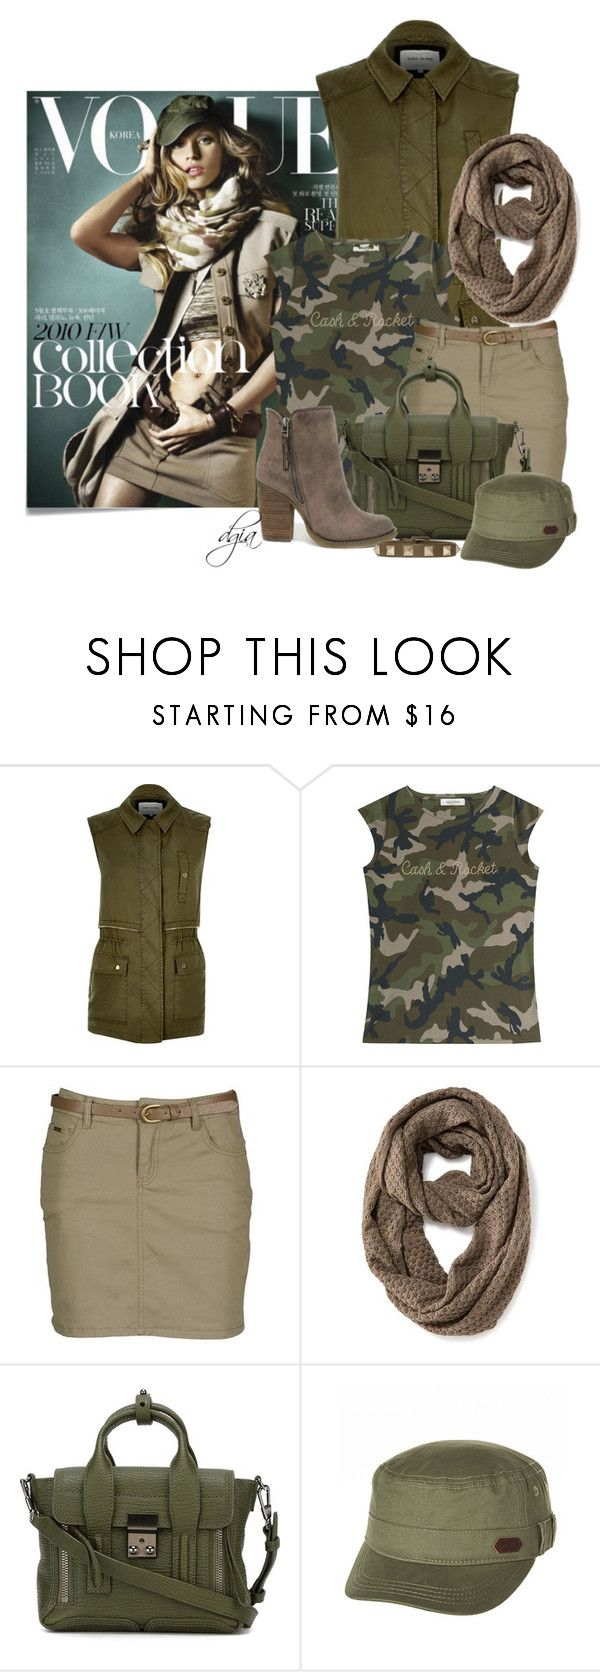 """Gisele Bündchen"" by dgia ❤ liked on Polyvore featuring Post-It, River Island, Valentino, Best Mountain, Old Navy, 3.1 Phillip Lim, Sbicca and Roxy"